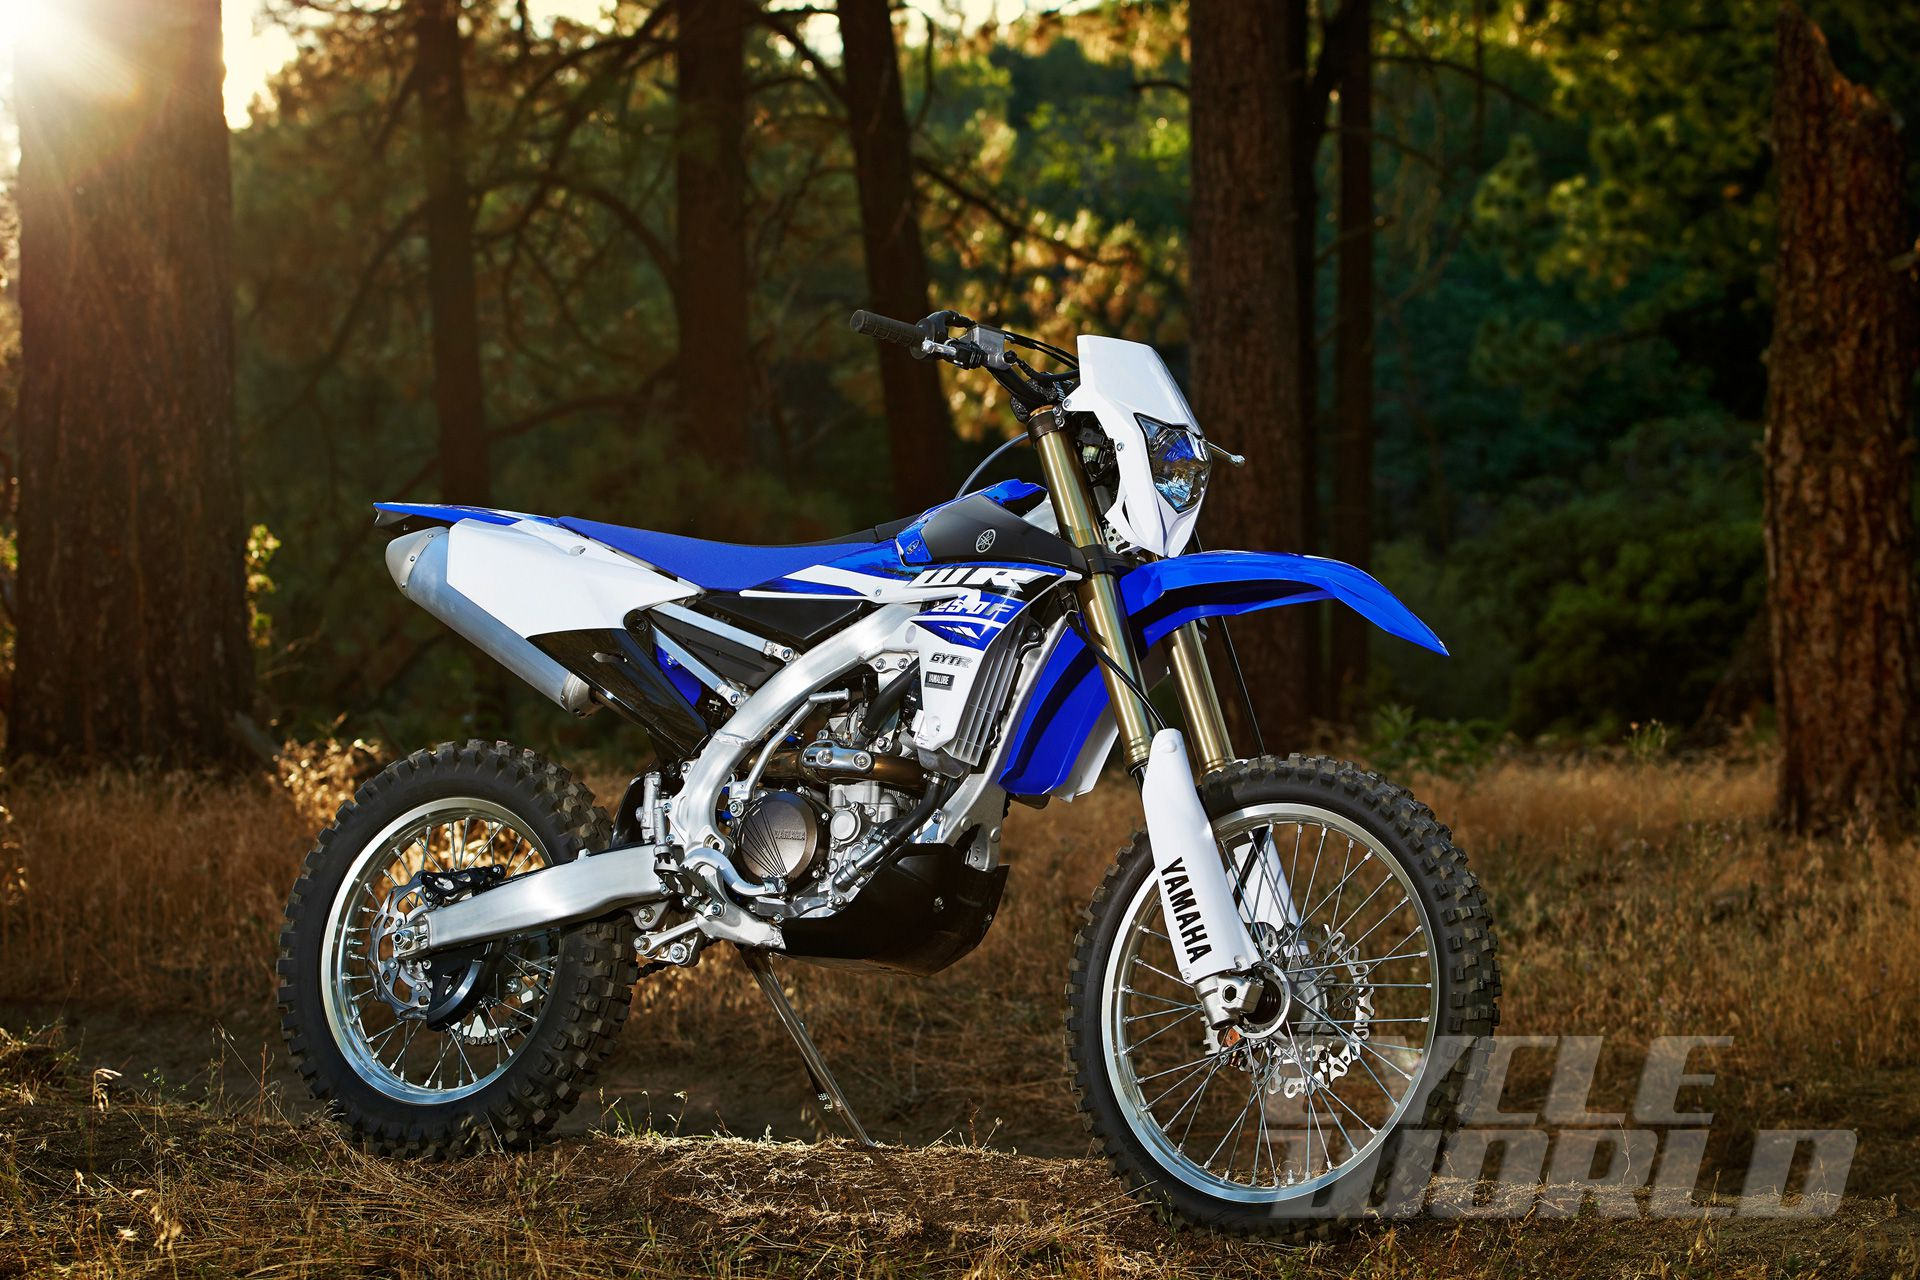 Stupendous 2015 Yamaha Wr250F First Look Motorcycle Review Photos Short Links Chair Design For Home Short Linksinfo